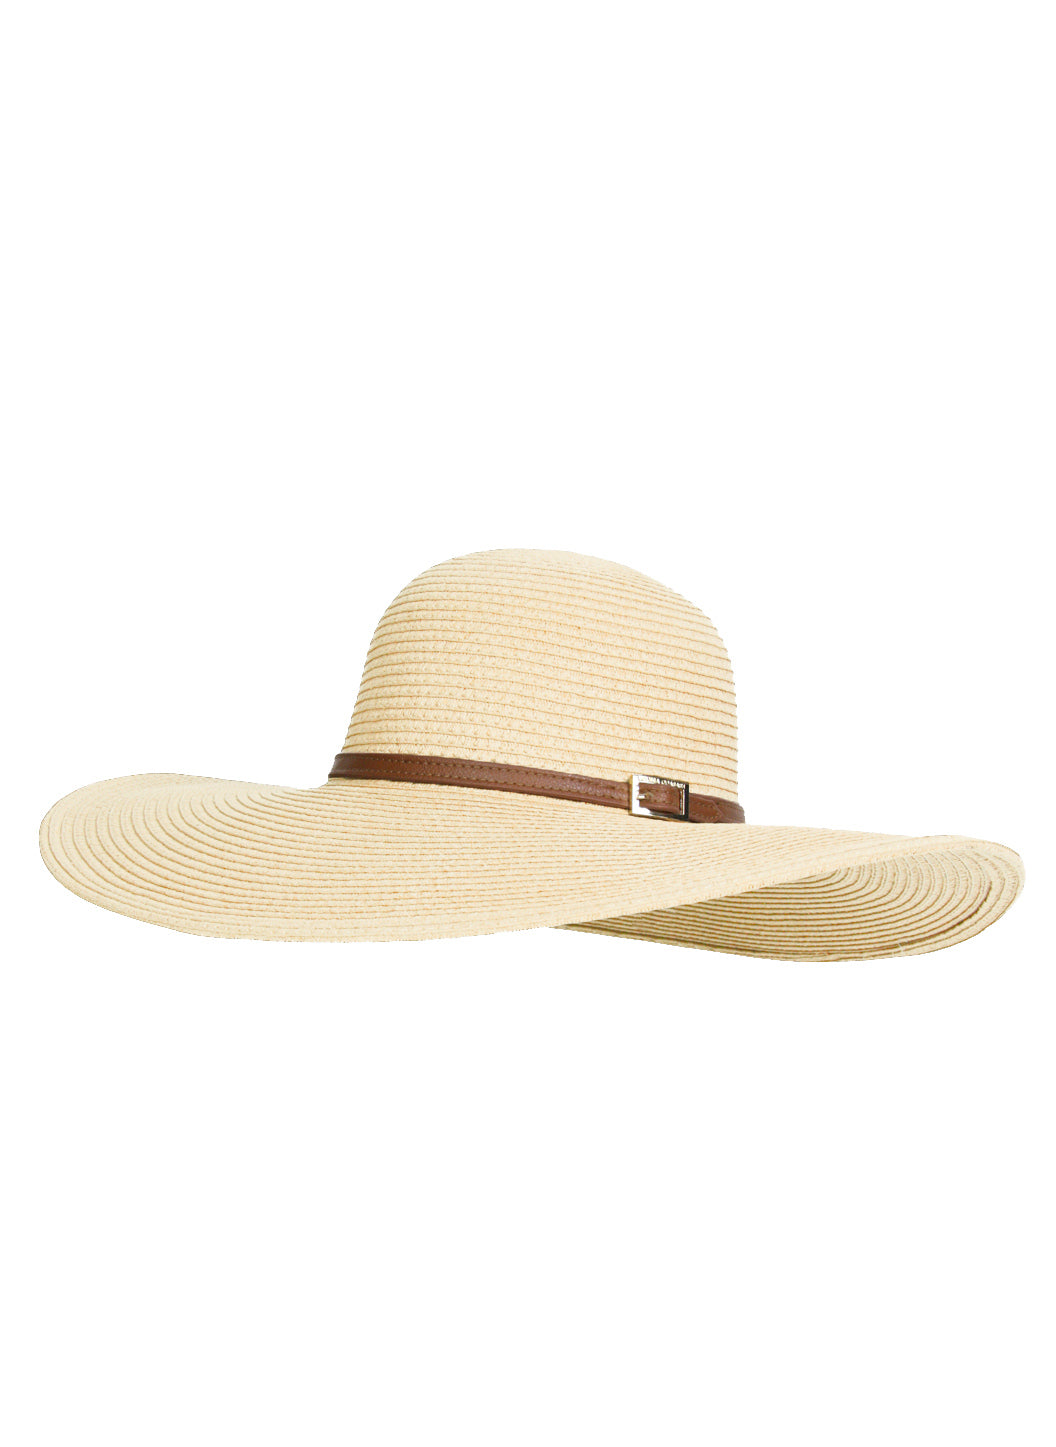 Melissa Odabash Jemima Wide Brim Beach Hat Cream